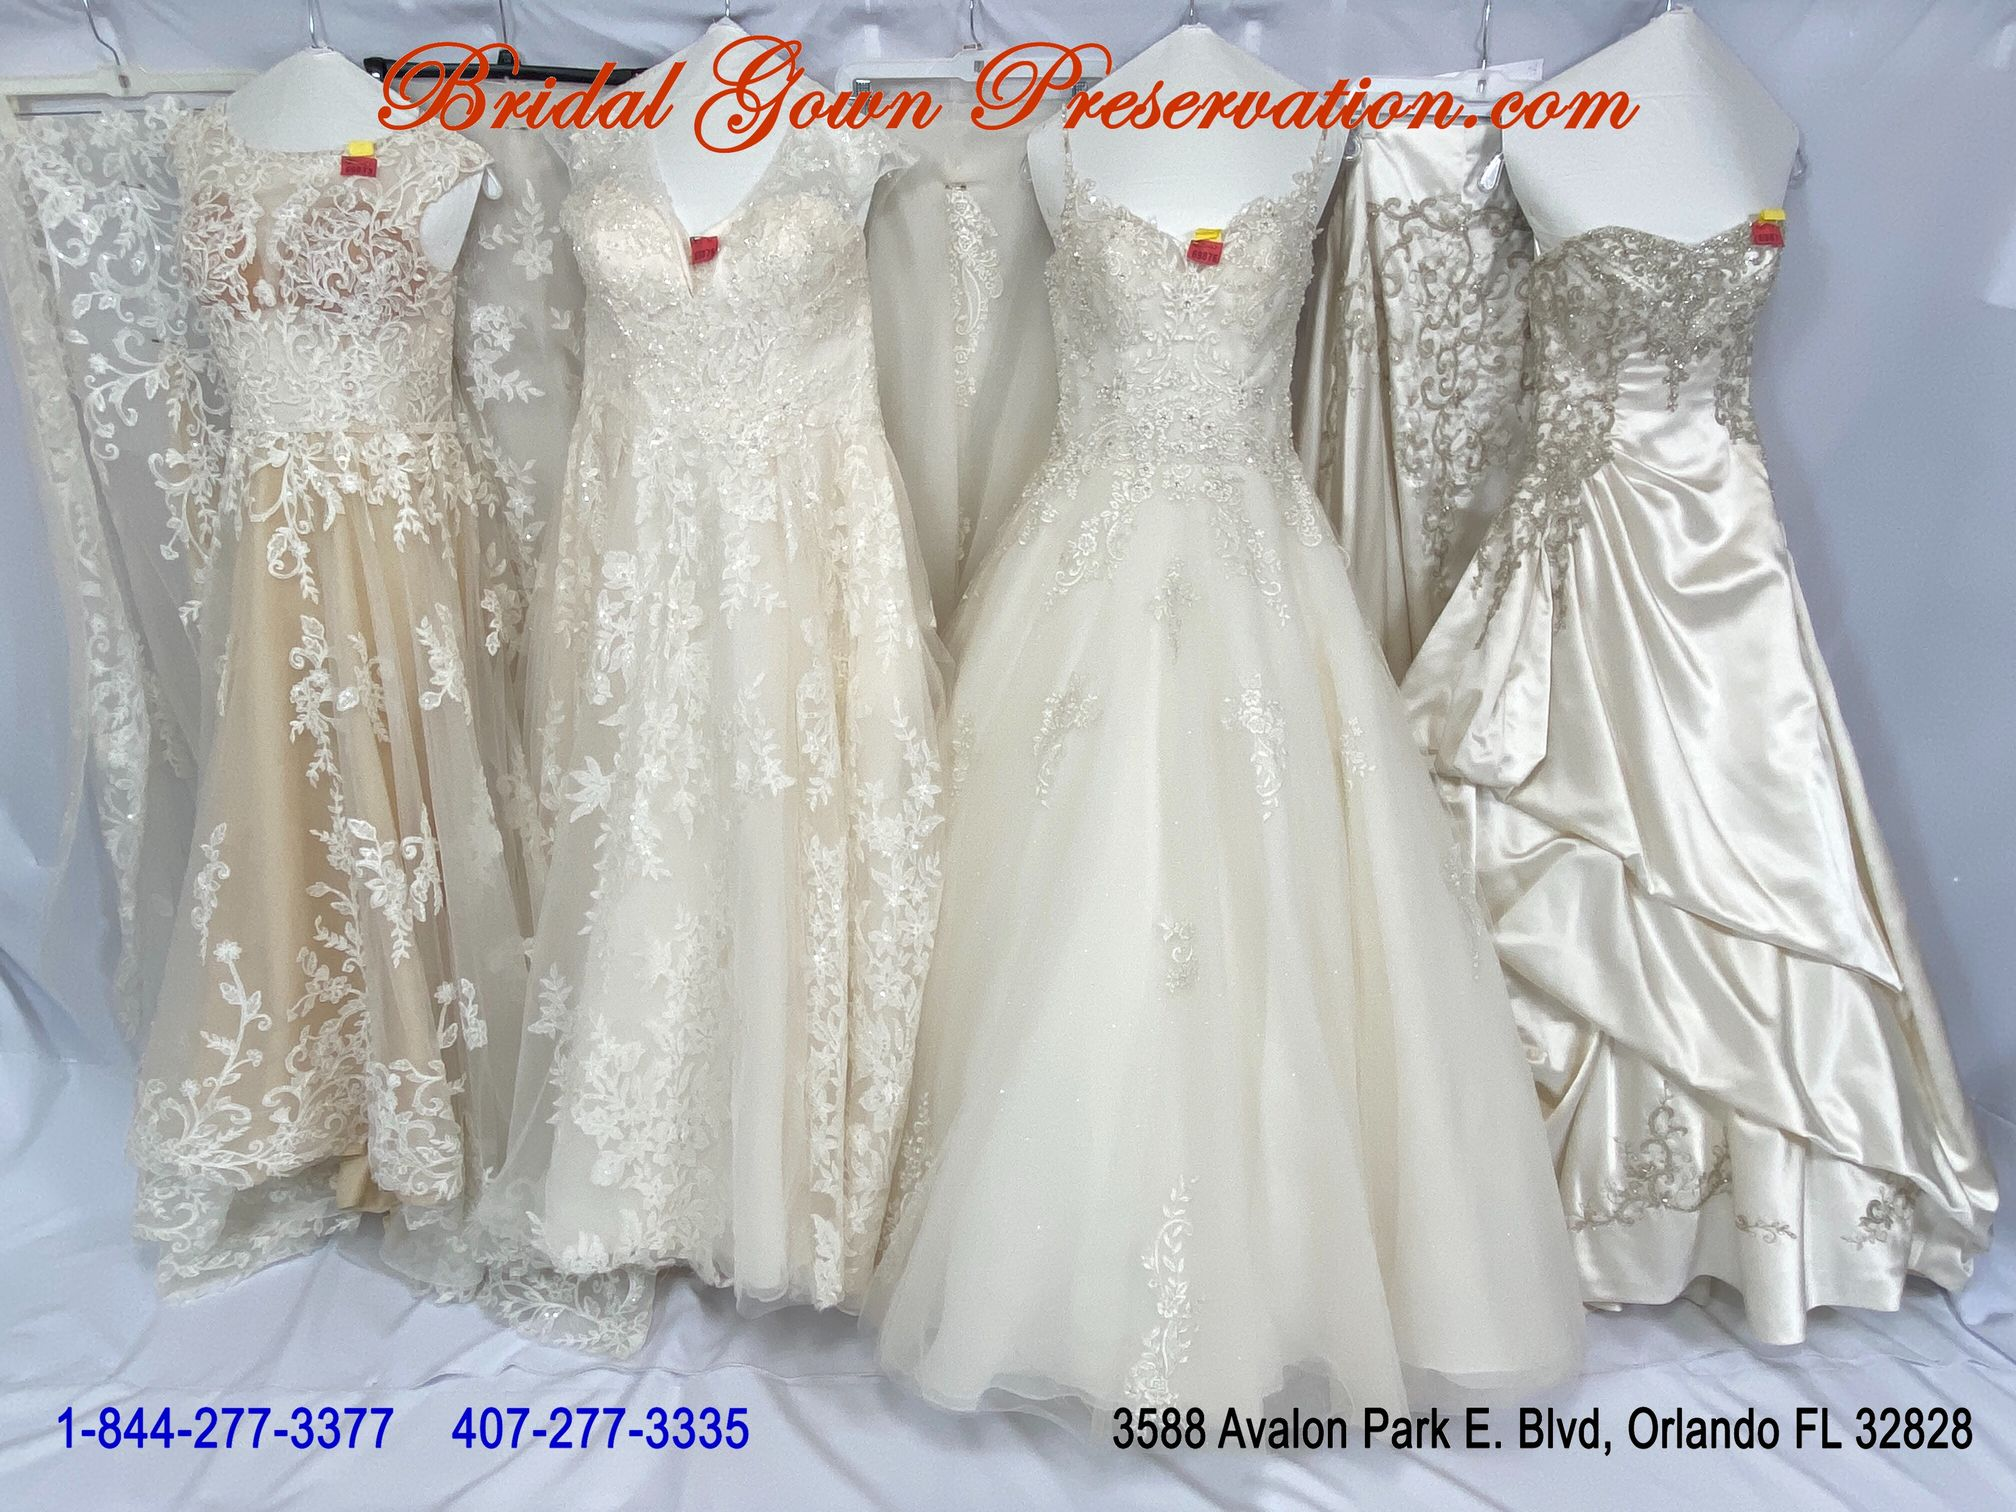 4 Wedding Gowns processed-by BridalGownPreservation.com